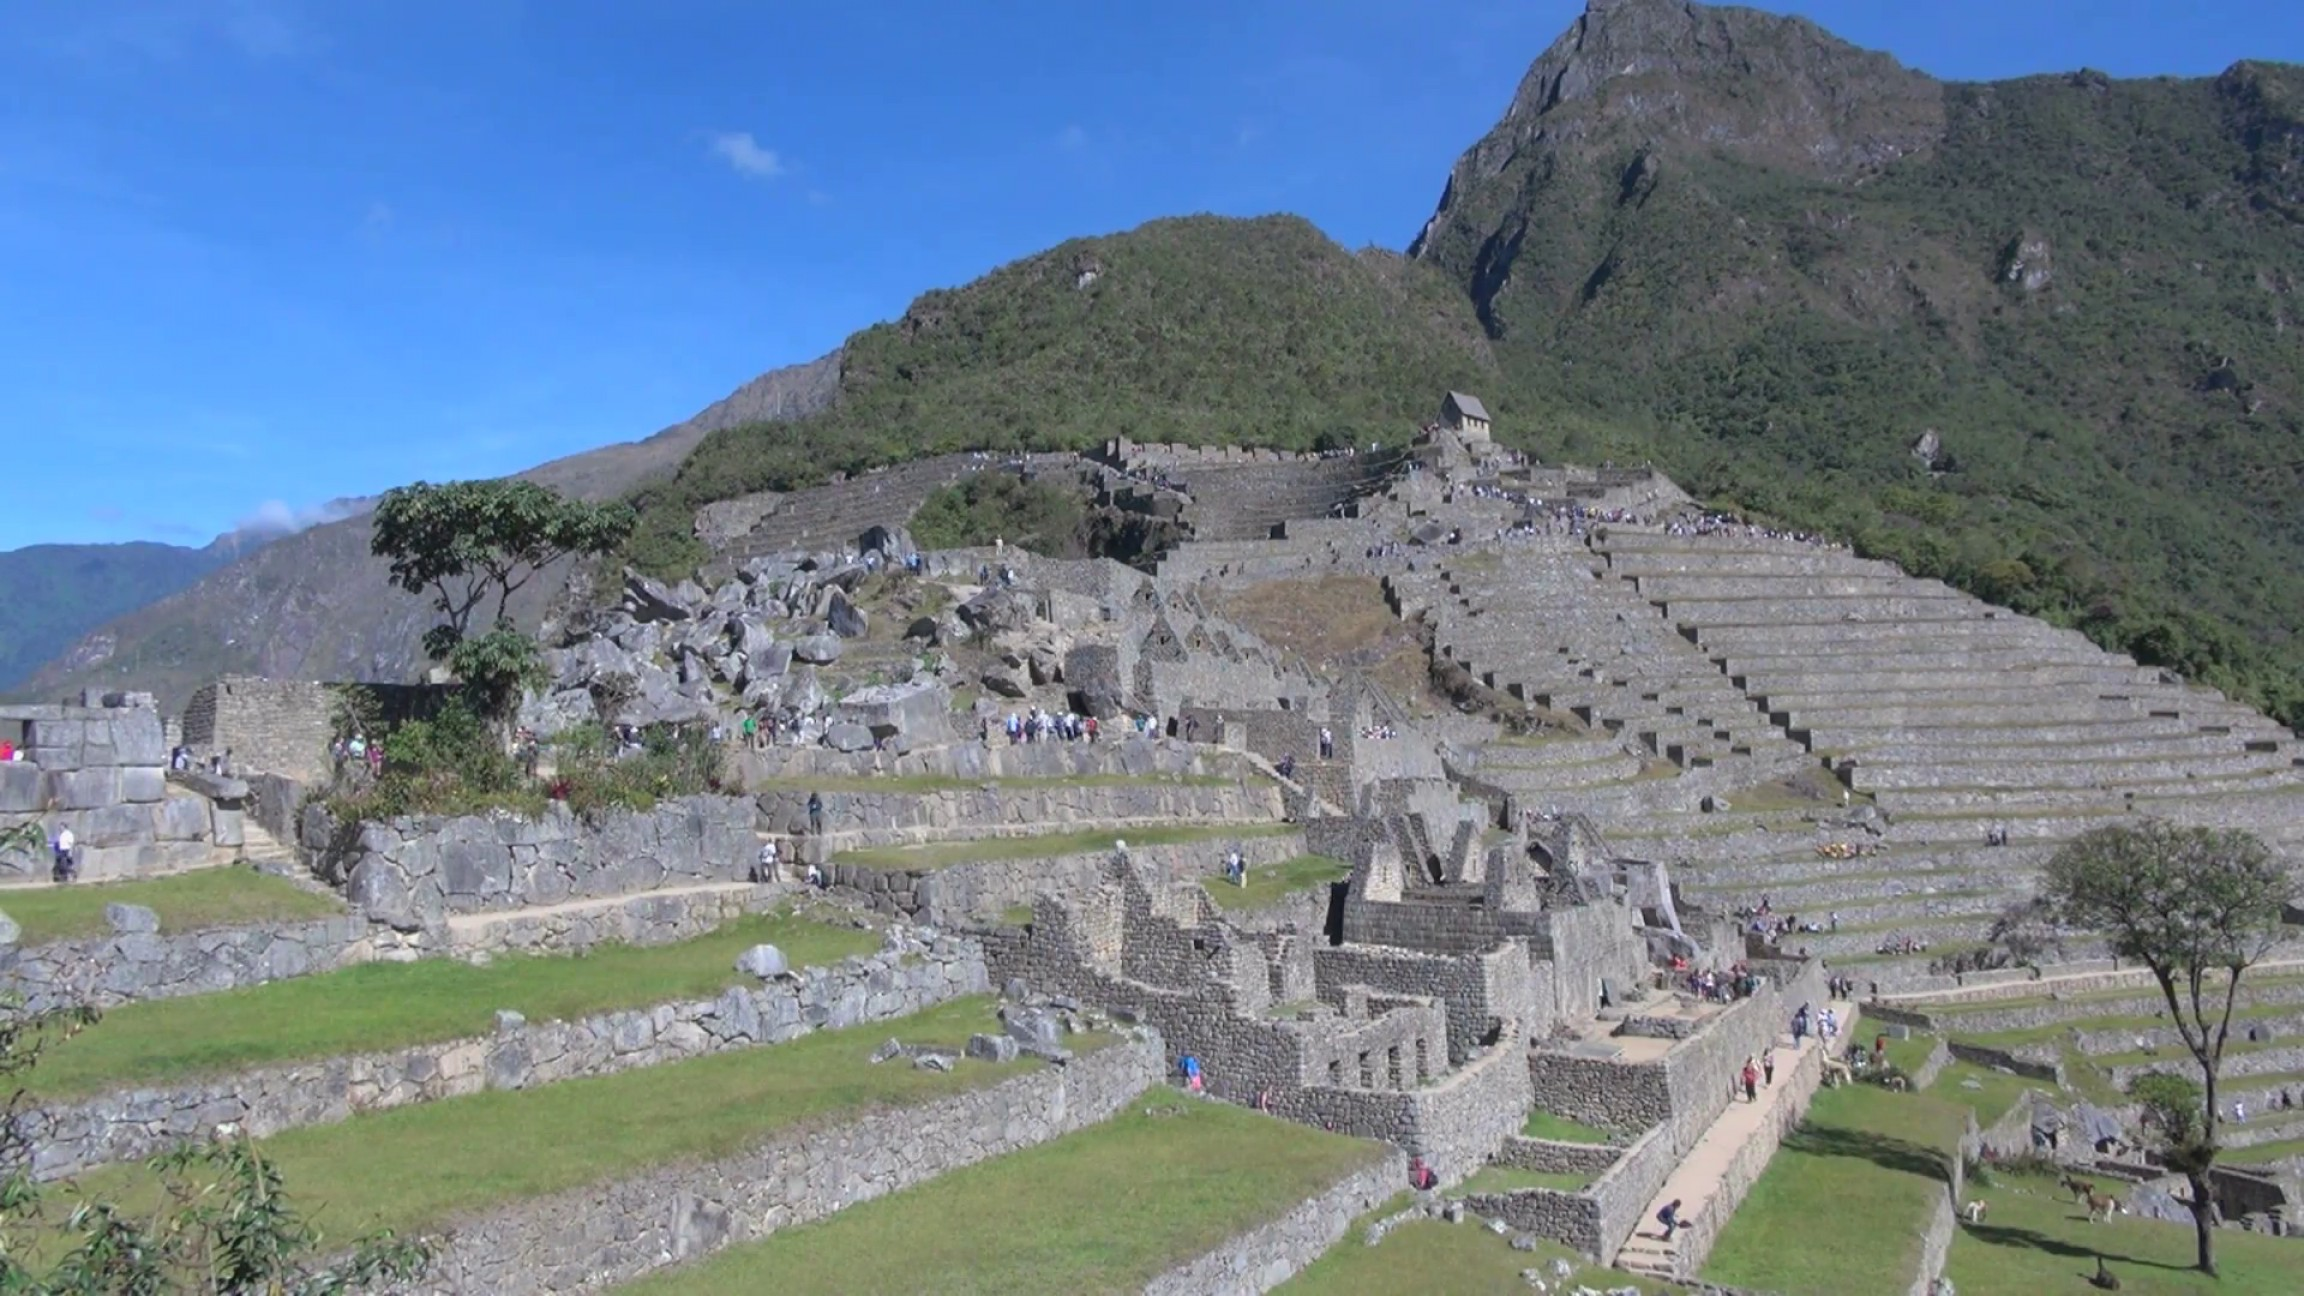 Vector South America Ancient Ruins: Terraces At Ancient Inca Ruins In South America Oxrrt